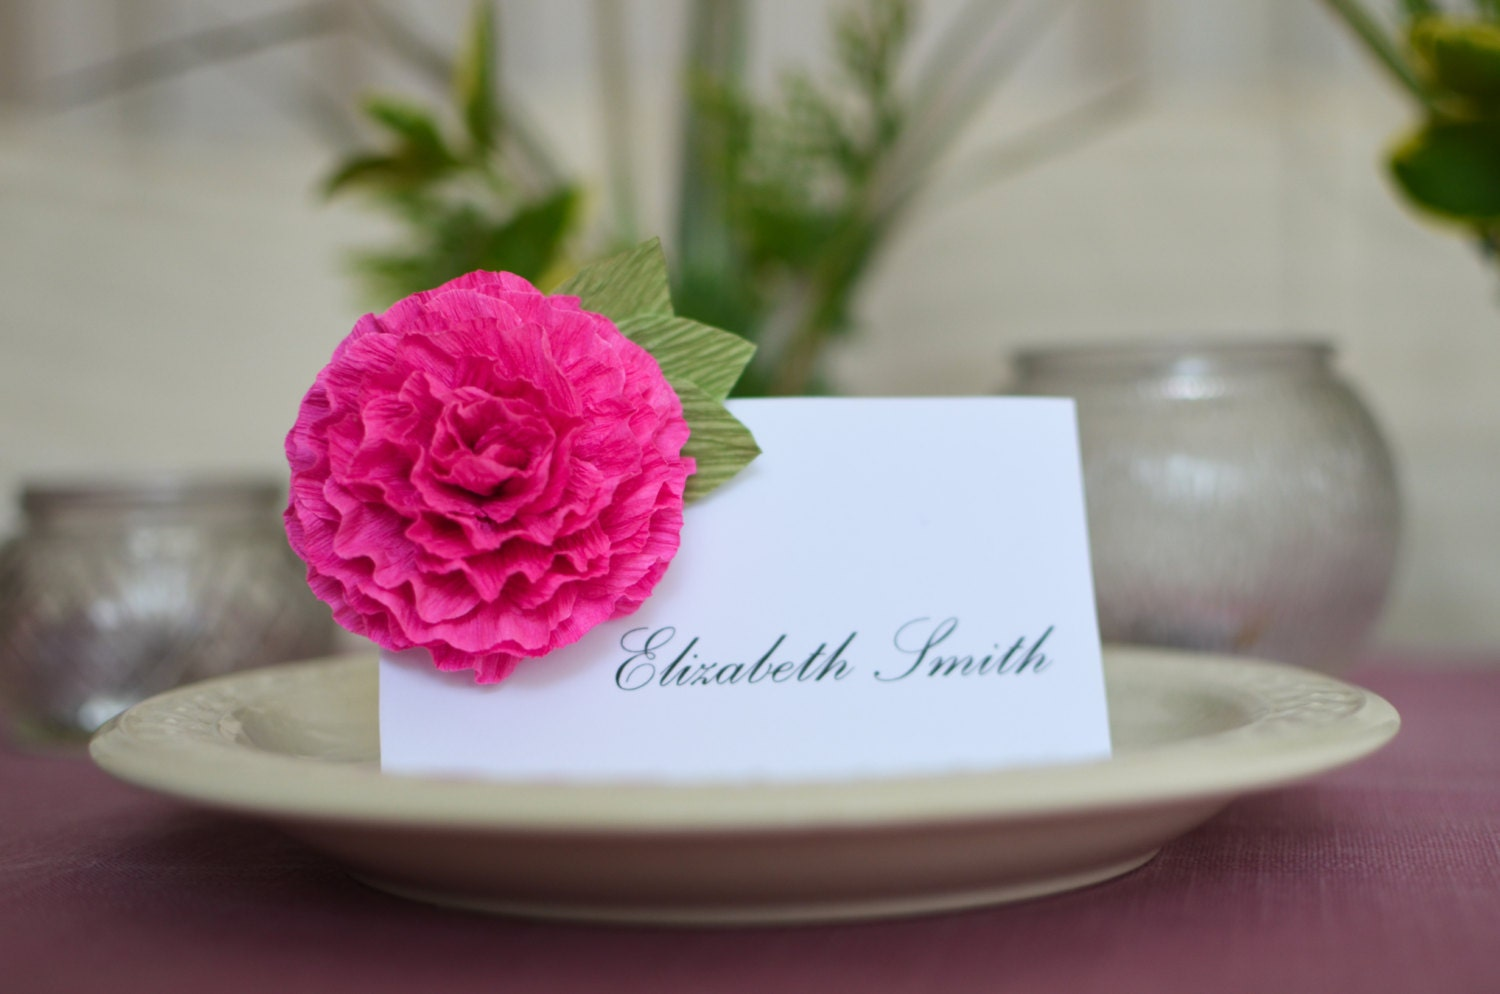 Wedding place cards escort cards wedding name cards custom for Personalized wedding place cards